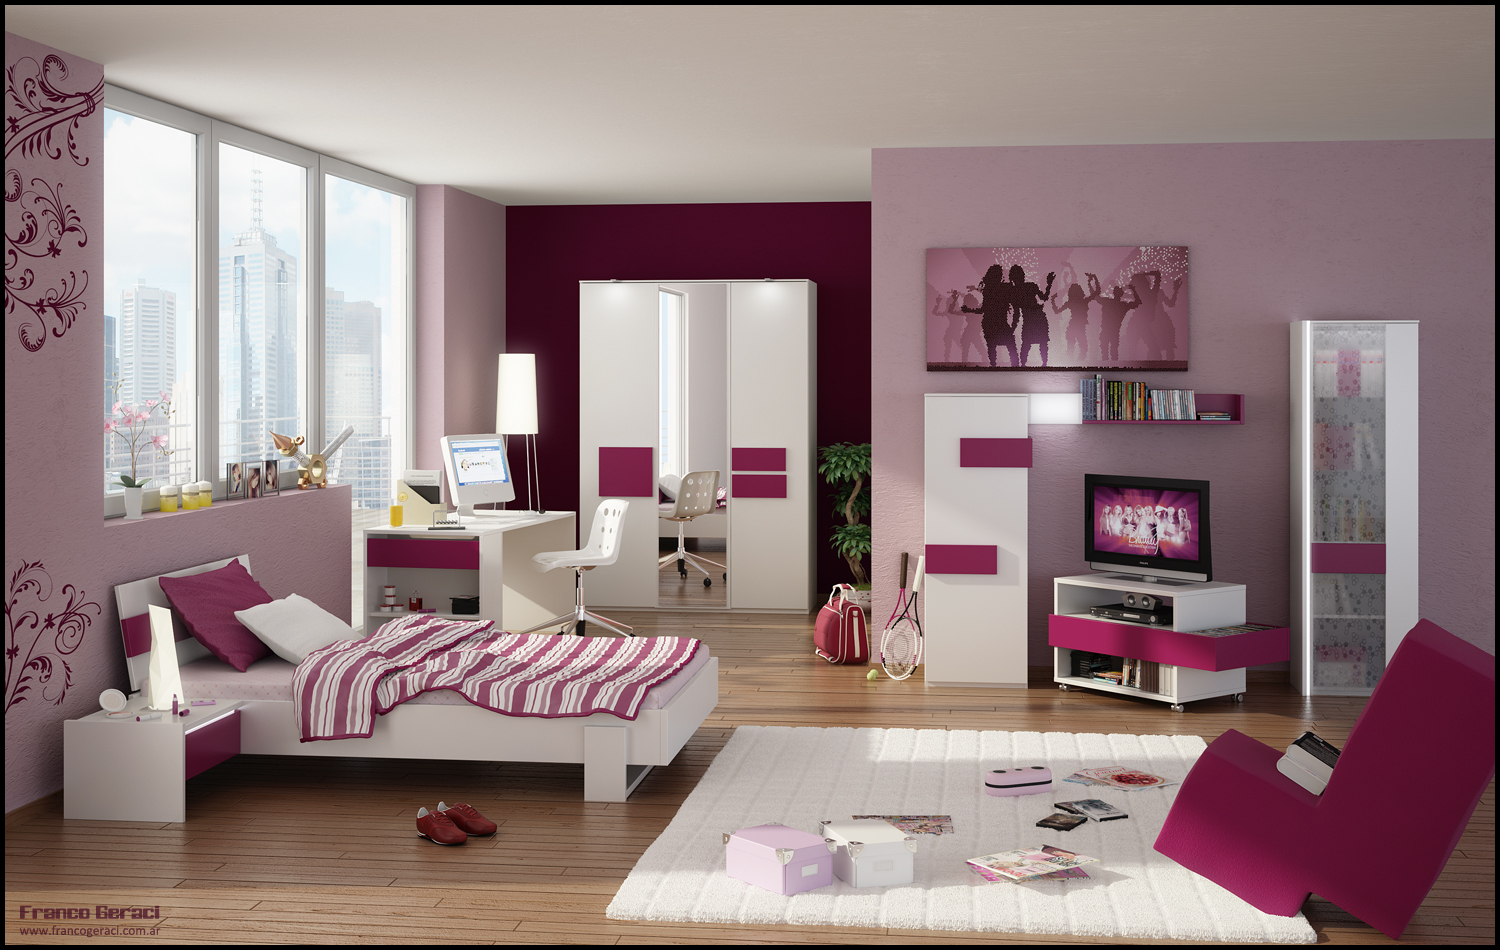 Magnificent Teenage Girls Room Design Ideas 1500 x 950 · 847 kB · jpeg